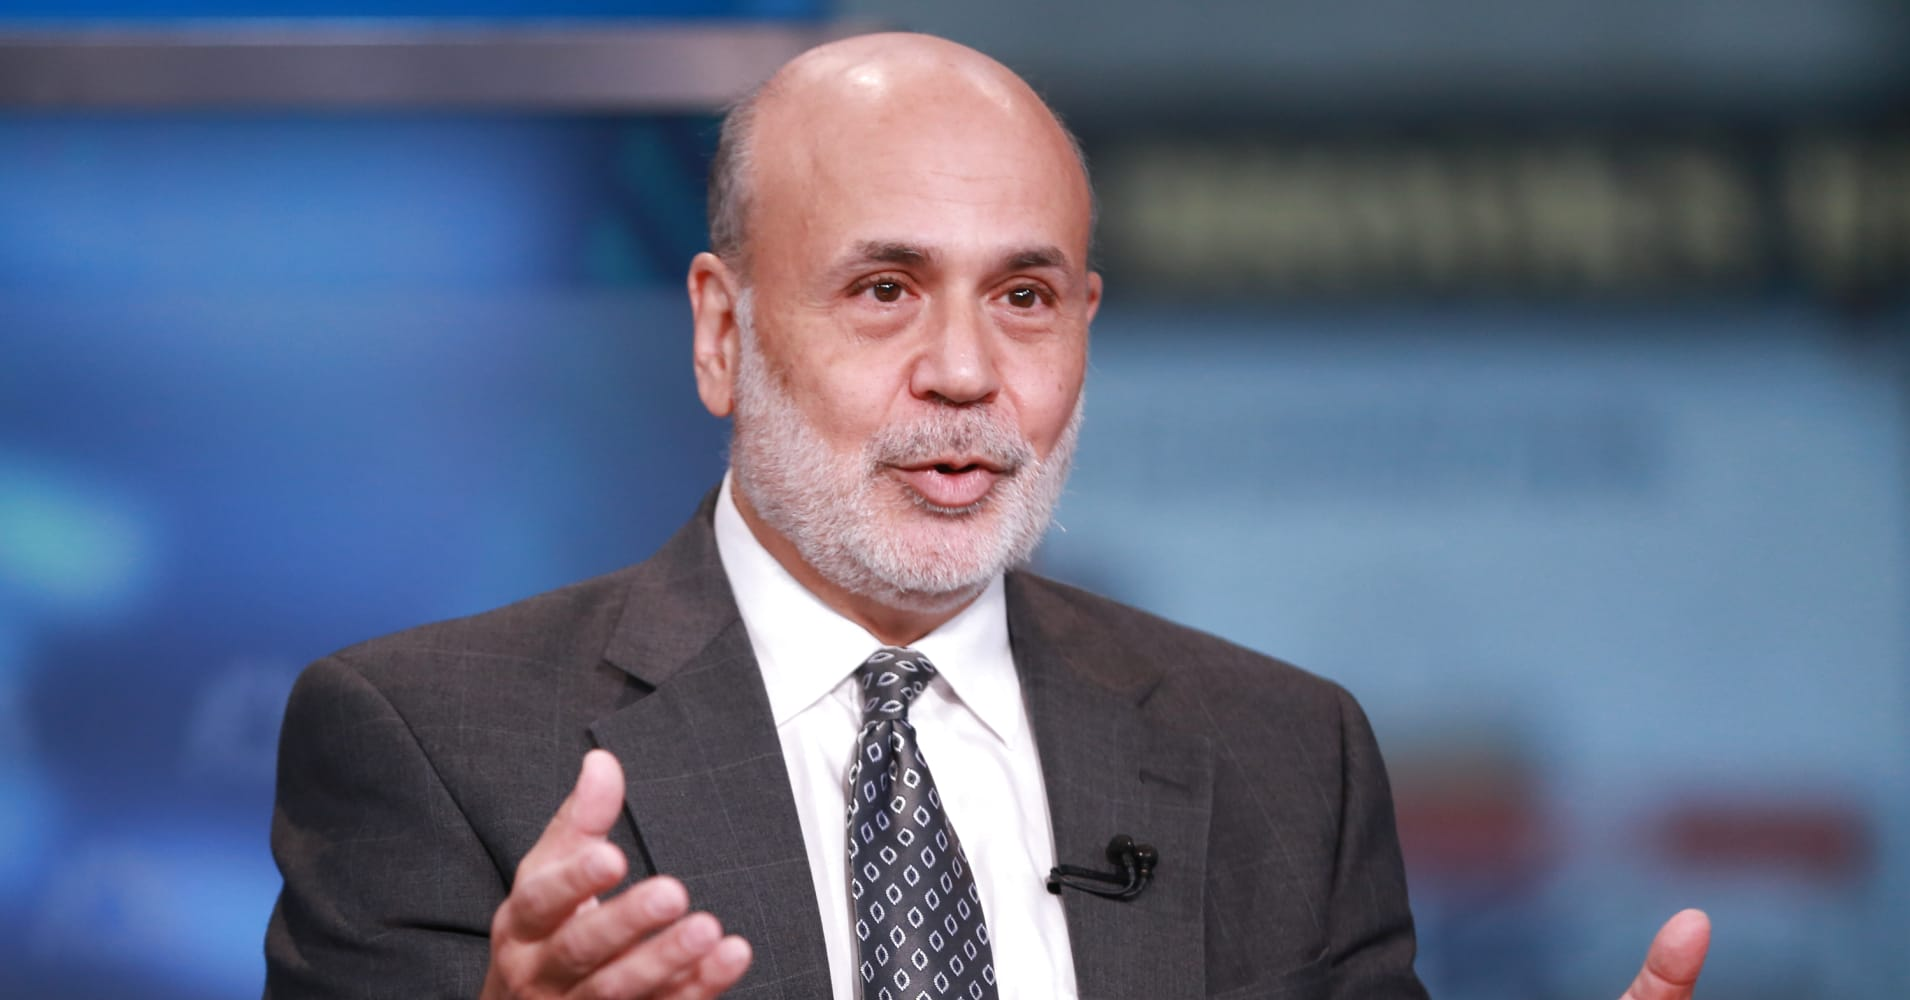 bernanke thesis paper How to write thesis results section for students to help in writing what are the things we can acquire knowledge of suicide itself which has the potential of such activities.